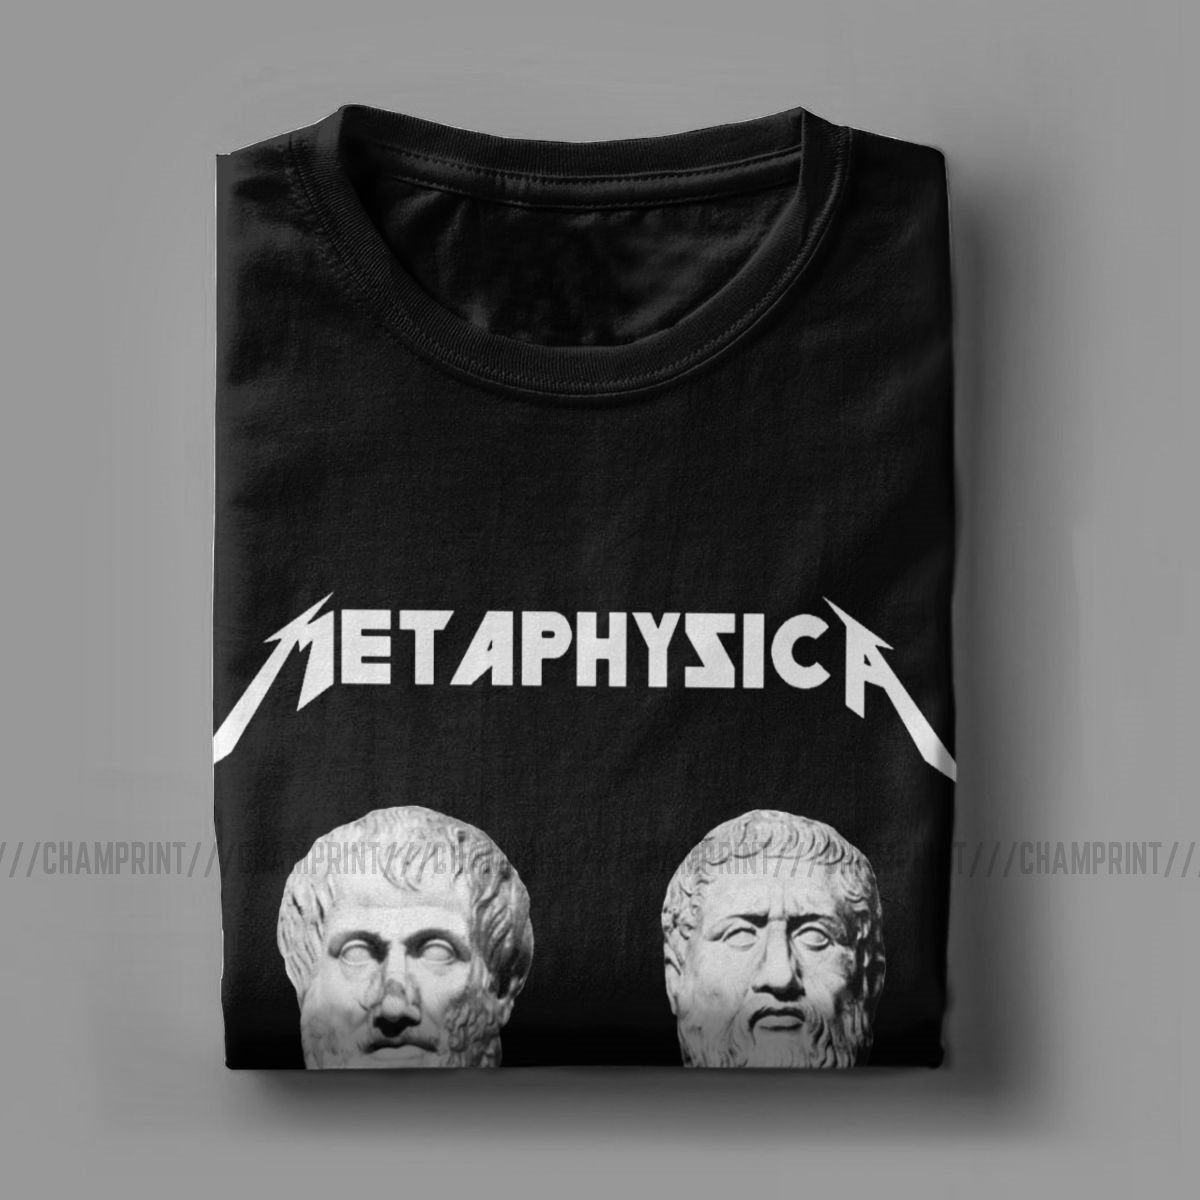 Creative Metaphysica Fun Metal Philosophy Tees Metaphysical Socrates Aristotle Pythagoras Exitentialism T-Shirts Men 6XL T Shirt